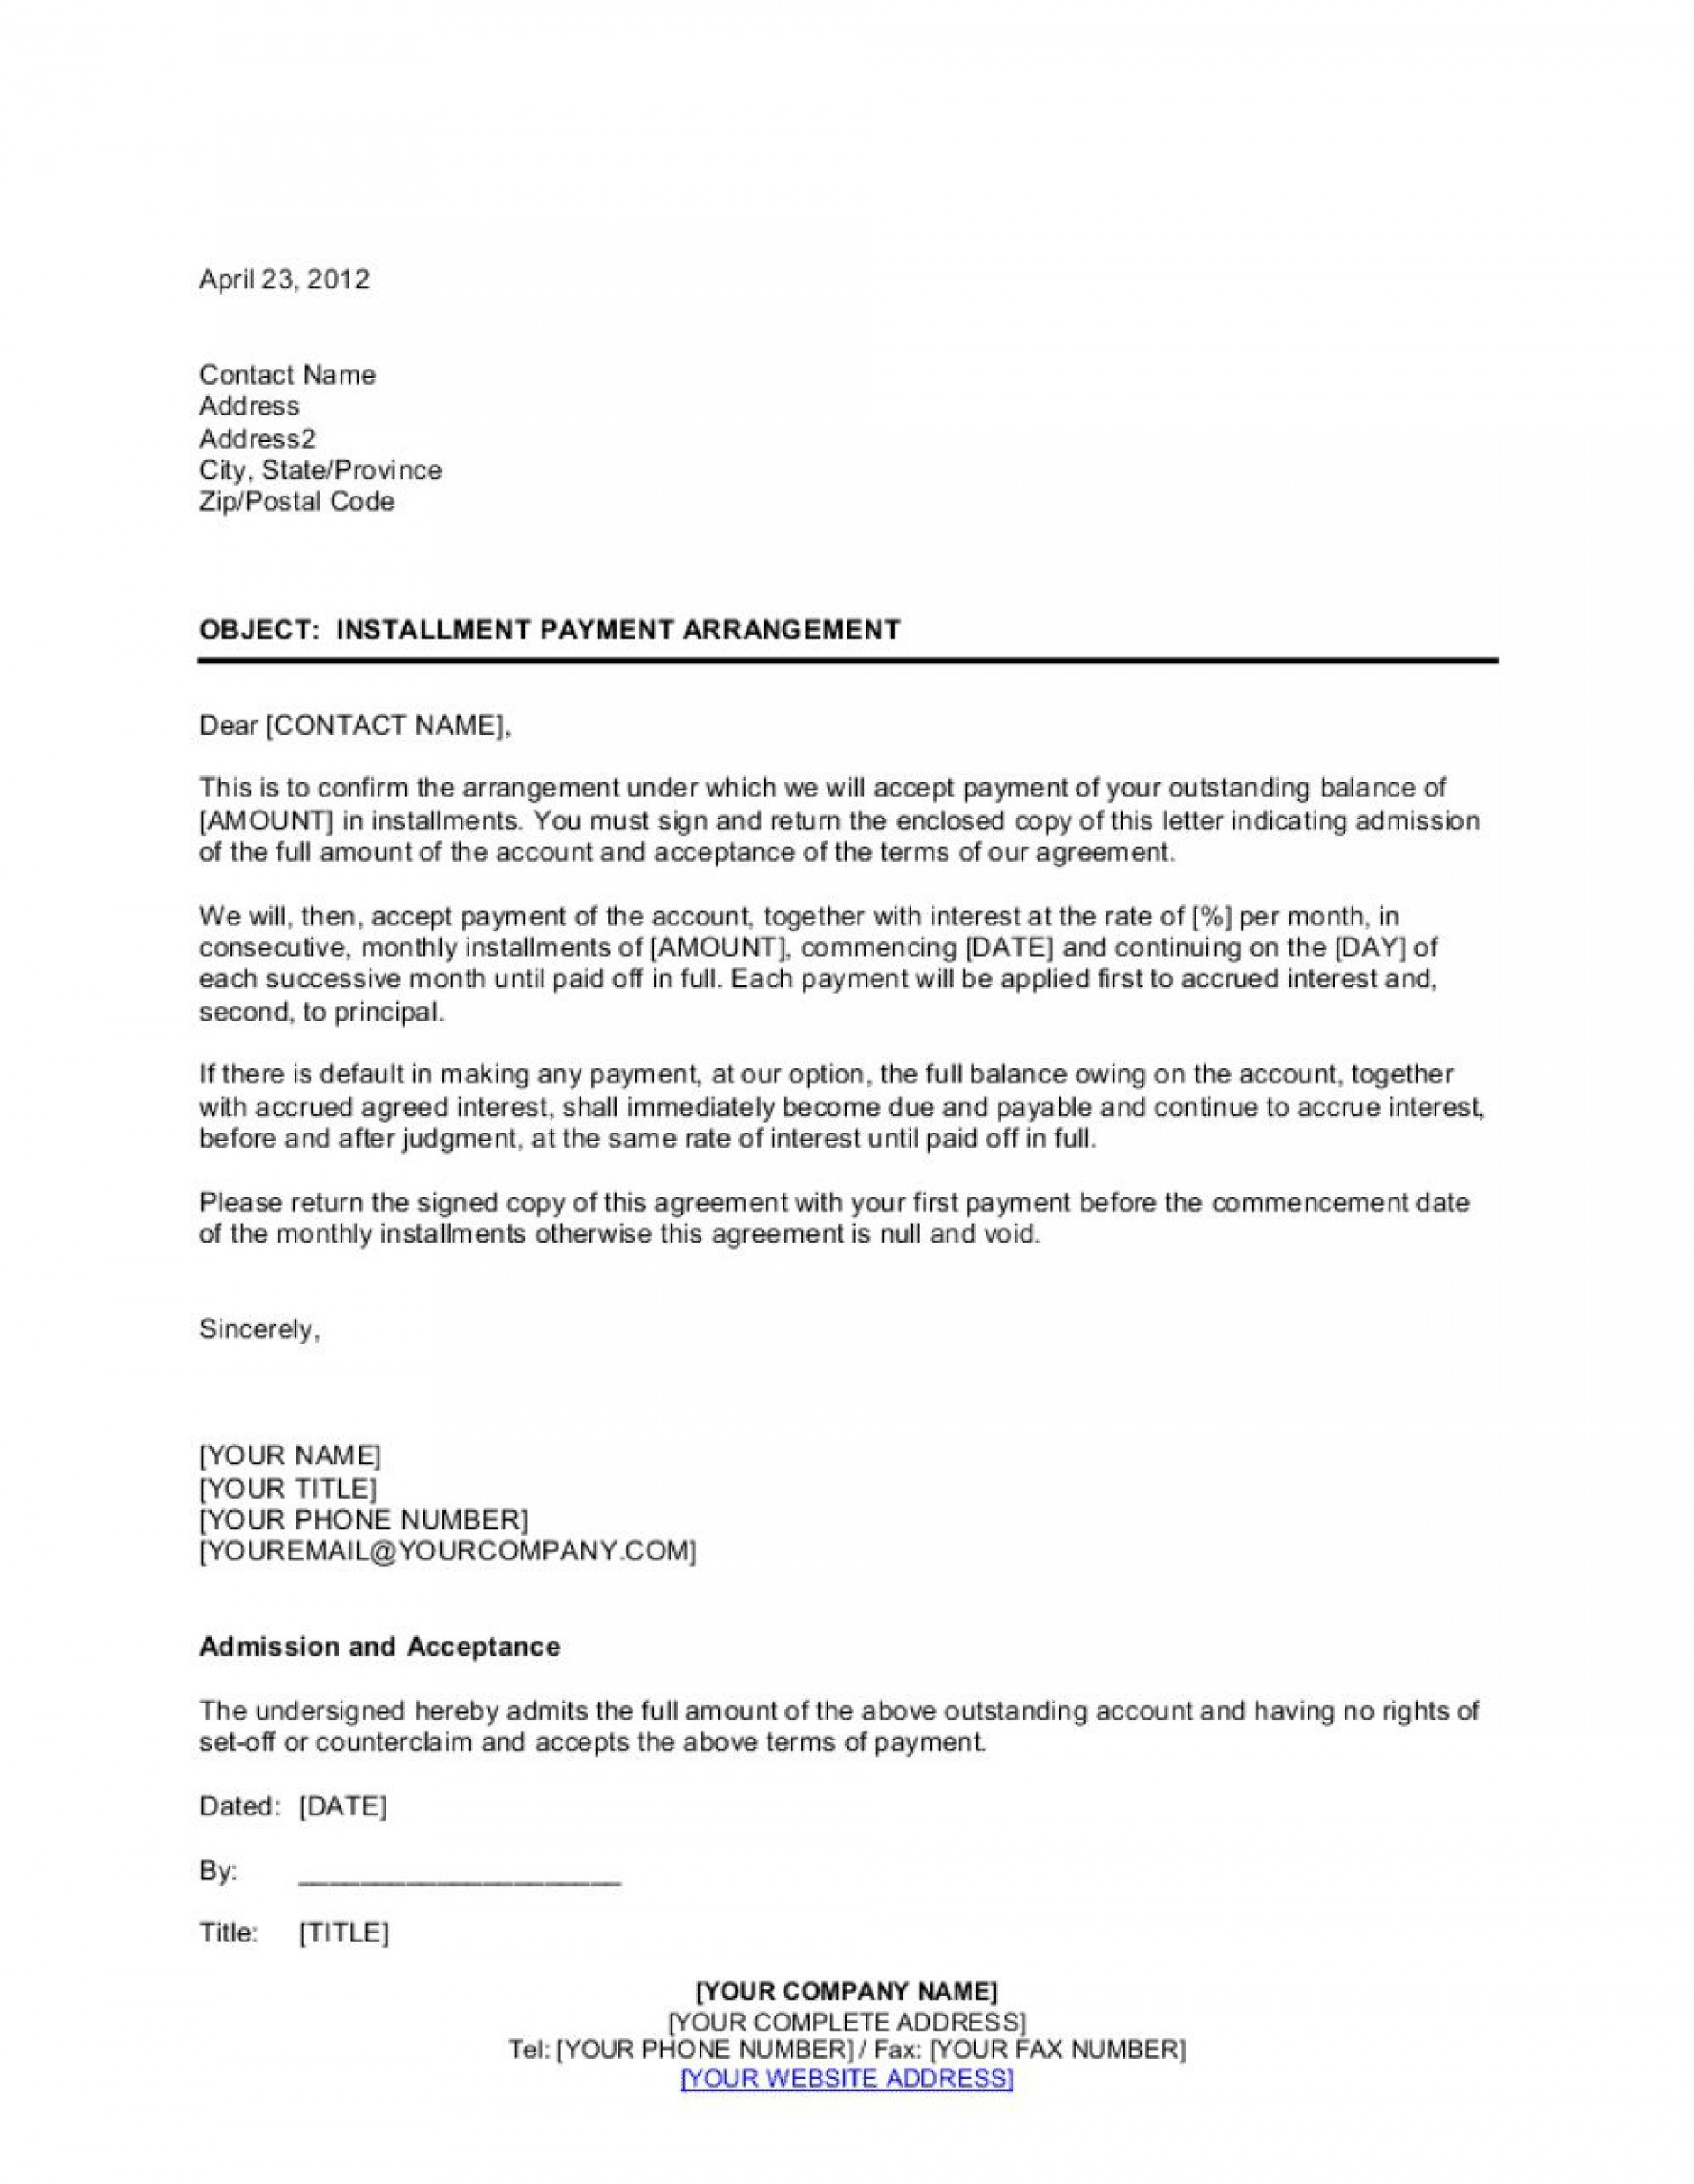 002 Simple Installment Payment Contract Template High Resolution  Car Agreement Monthly1920